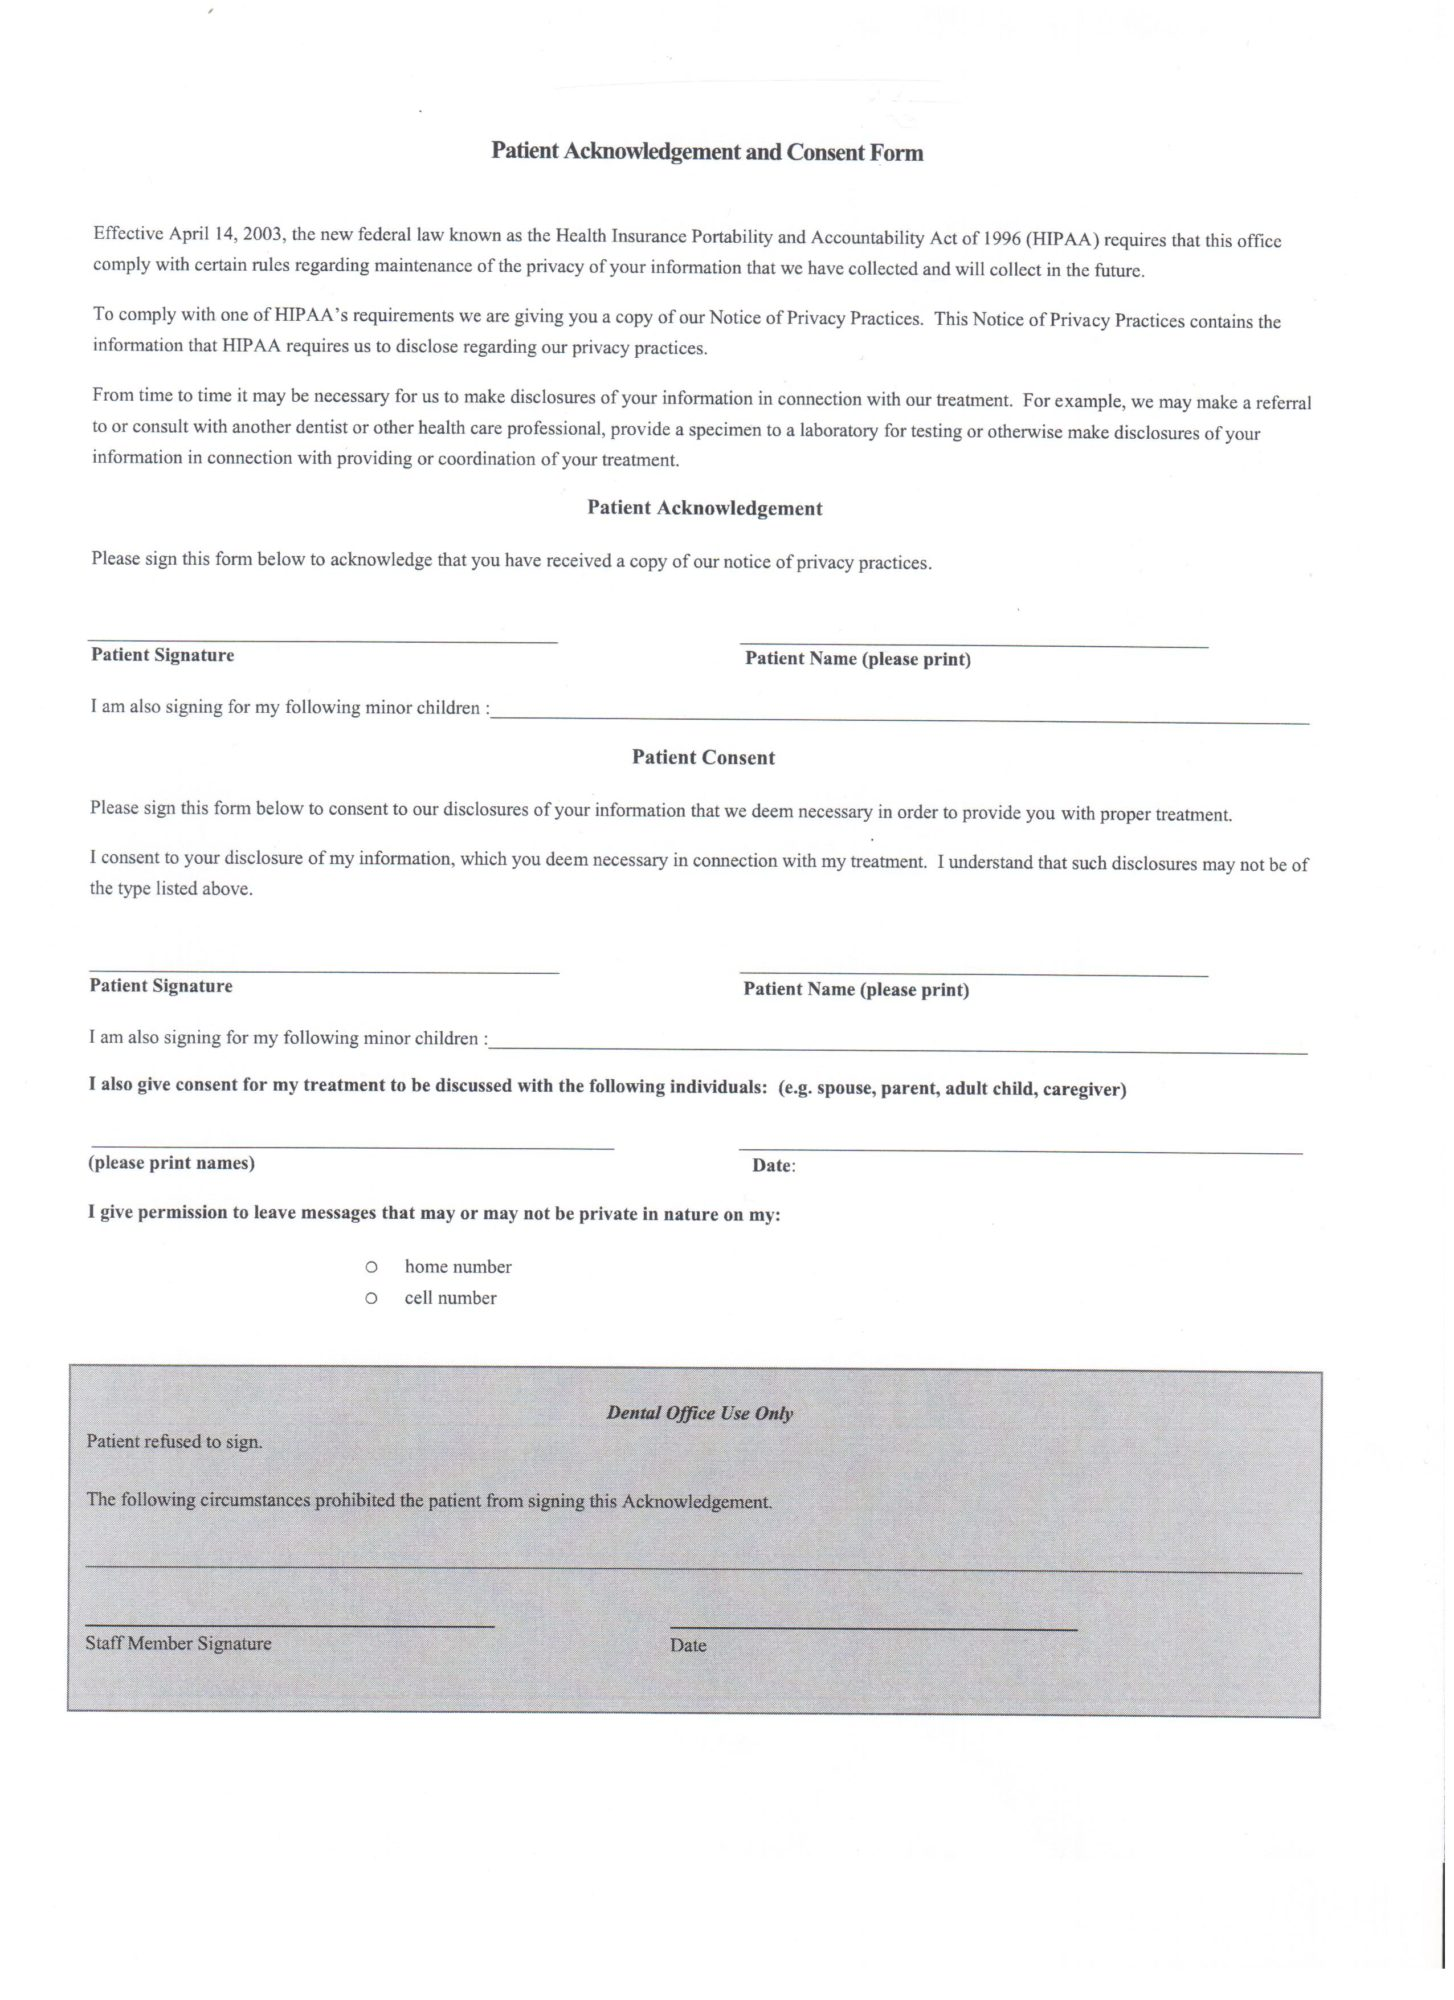 Patient forms cosmetic dentist in san jose ca arbor dental group patient consent form altavistaventures Gallery